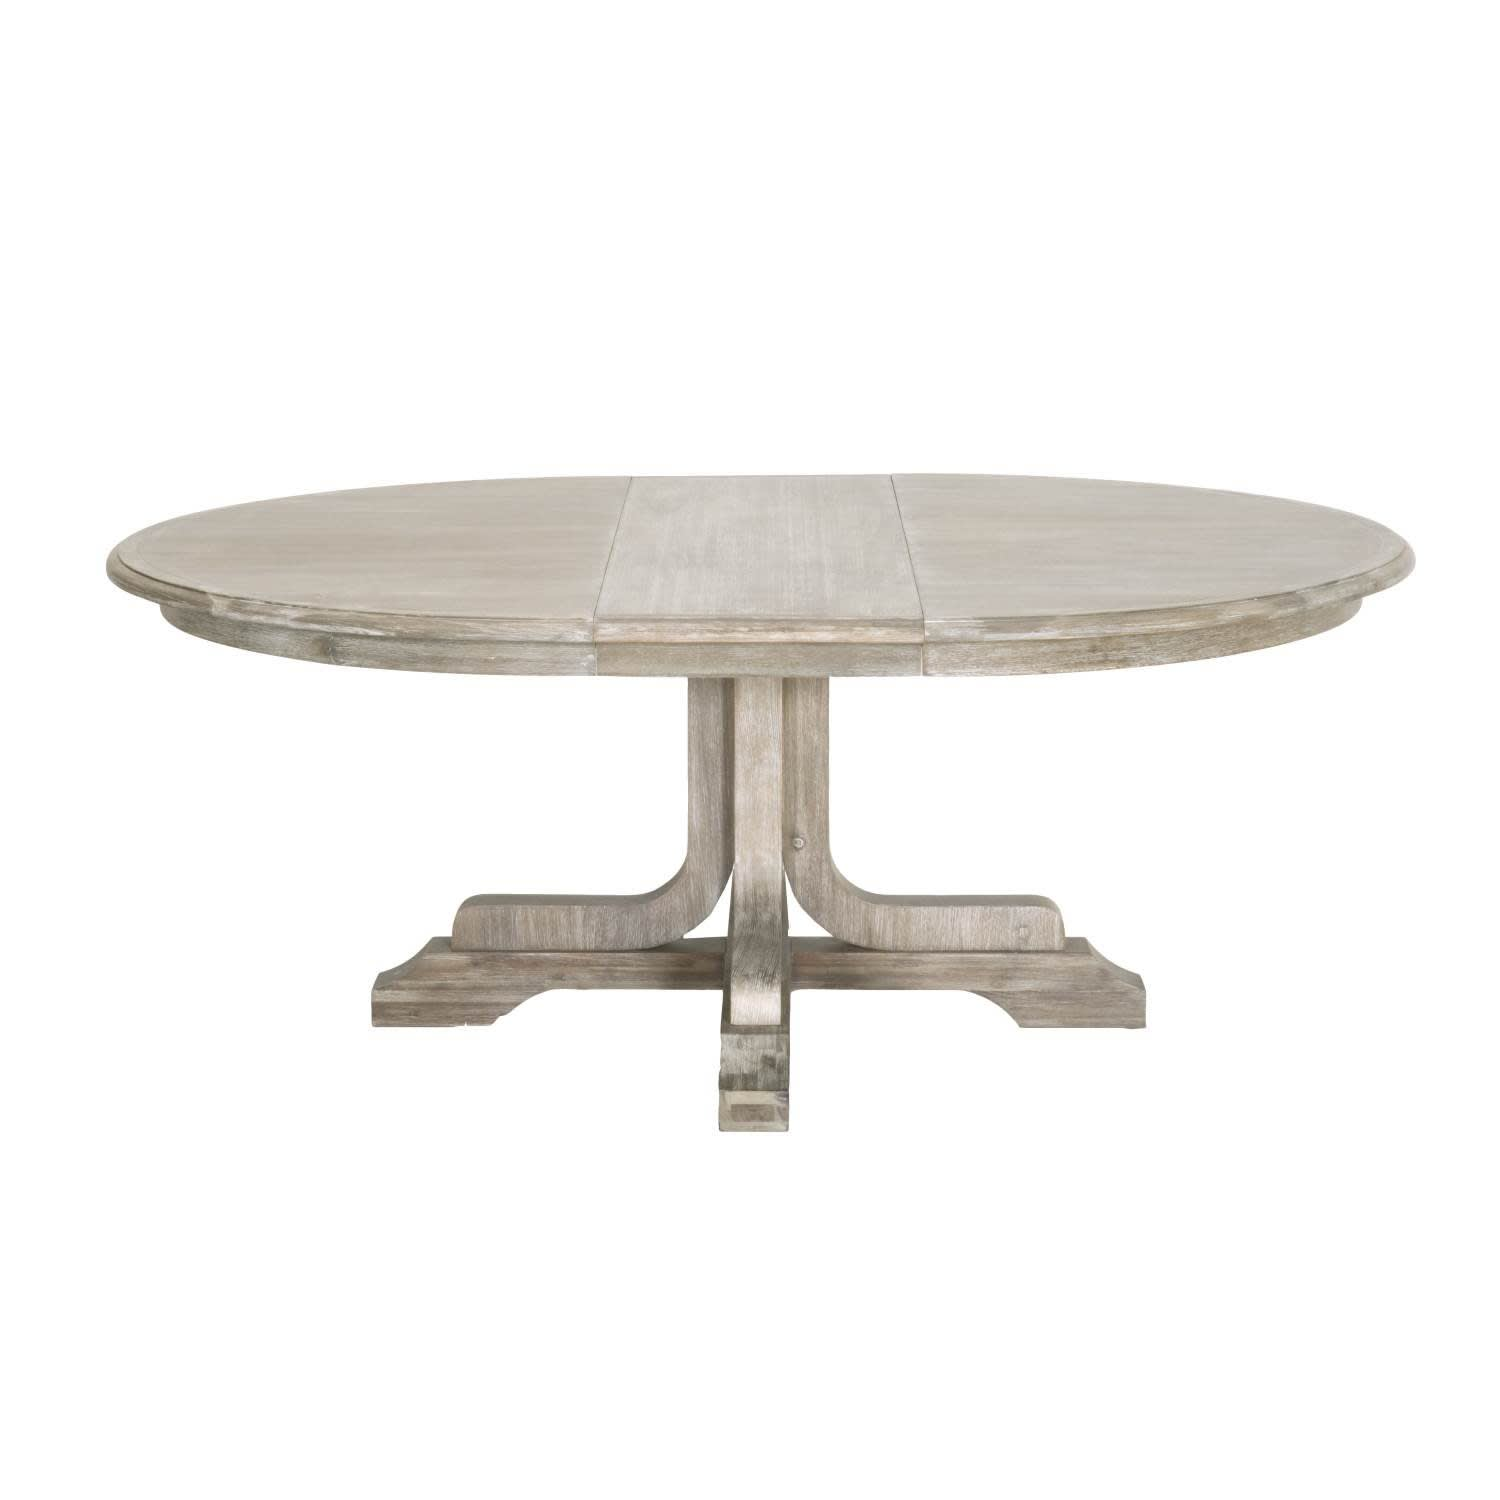 Torrey natural gray acacia veneer 60 round extension dining table